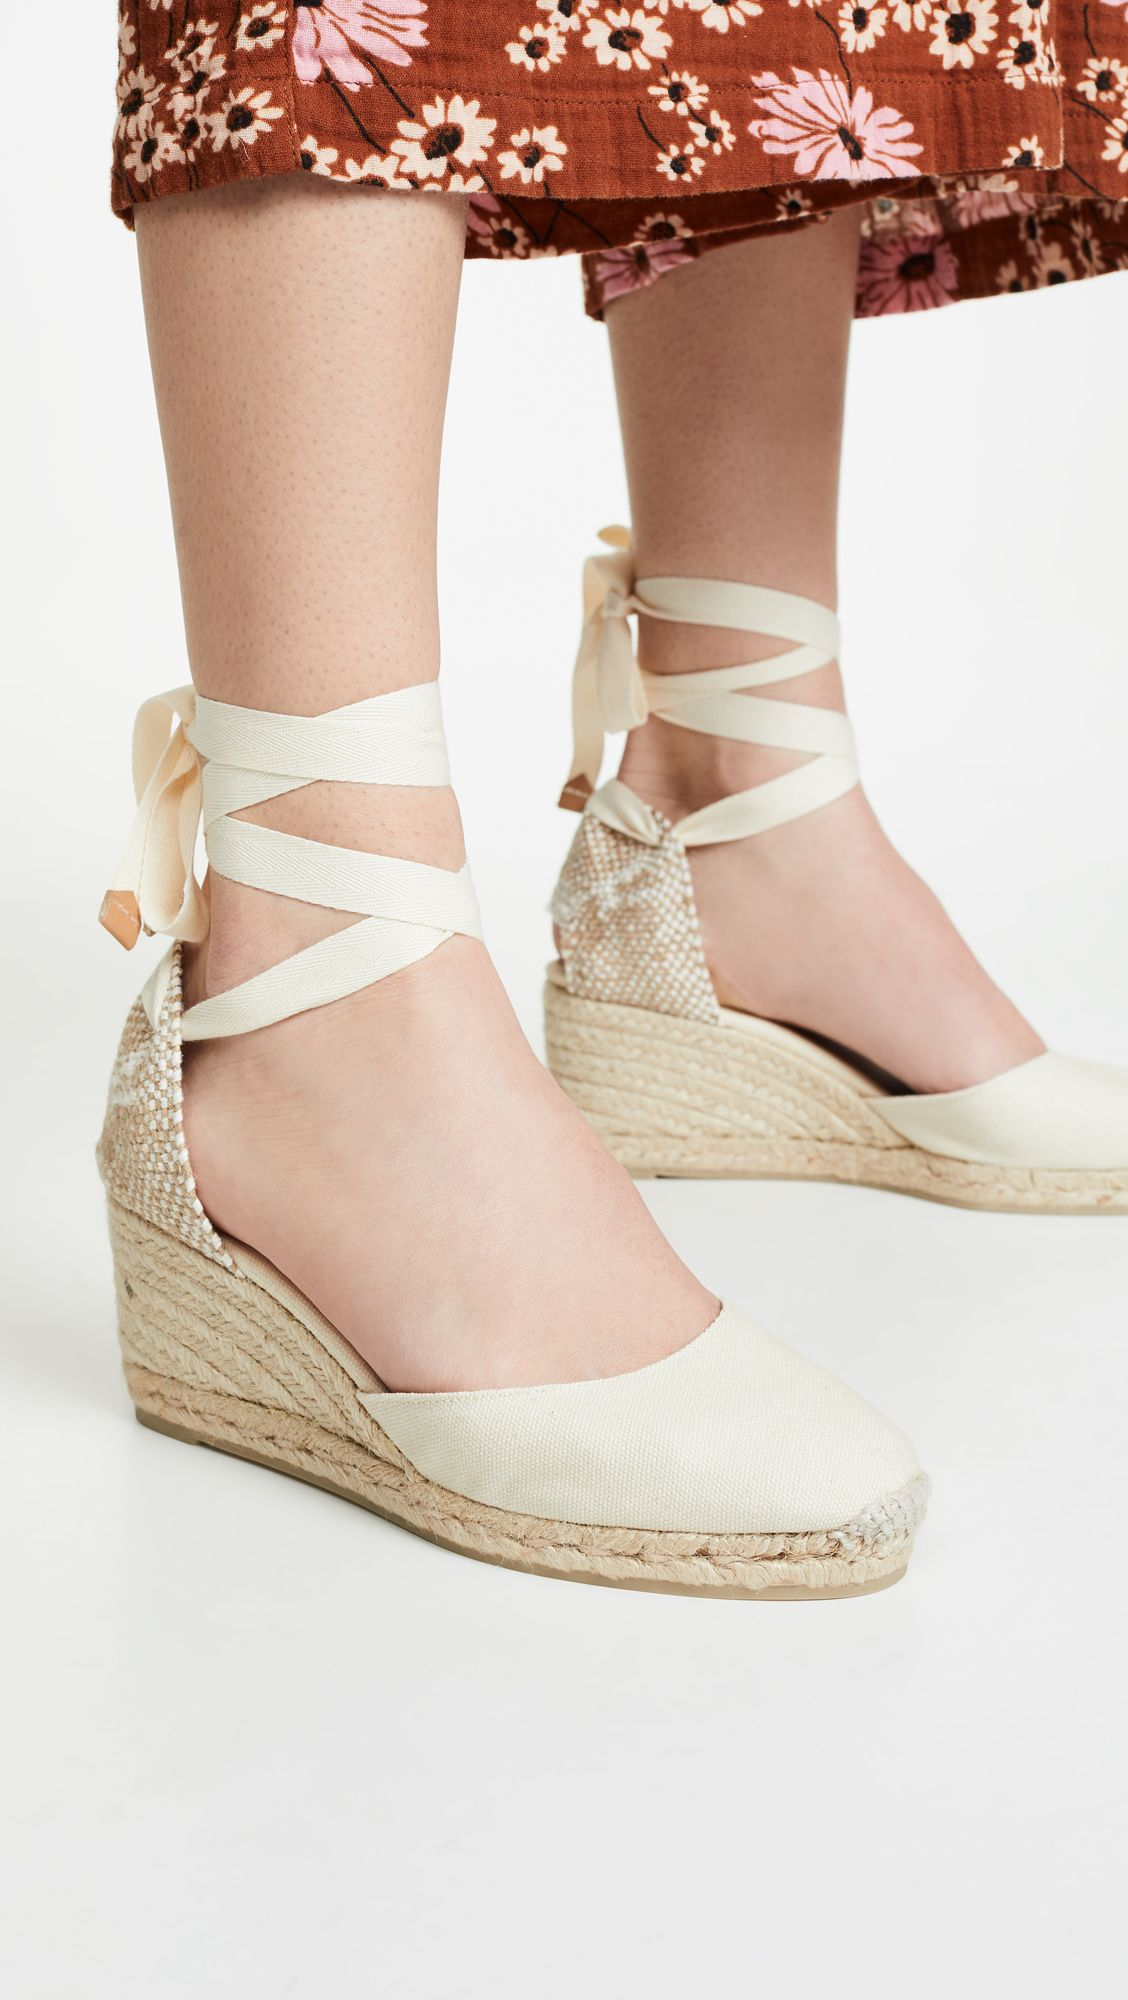 bd6c573bba6 Carina Wedge Espadrilles in 2019 | Summer shoes | Castaner ...